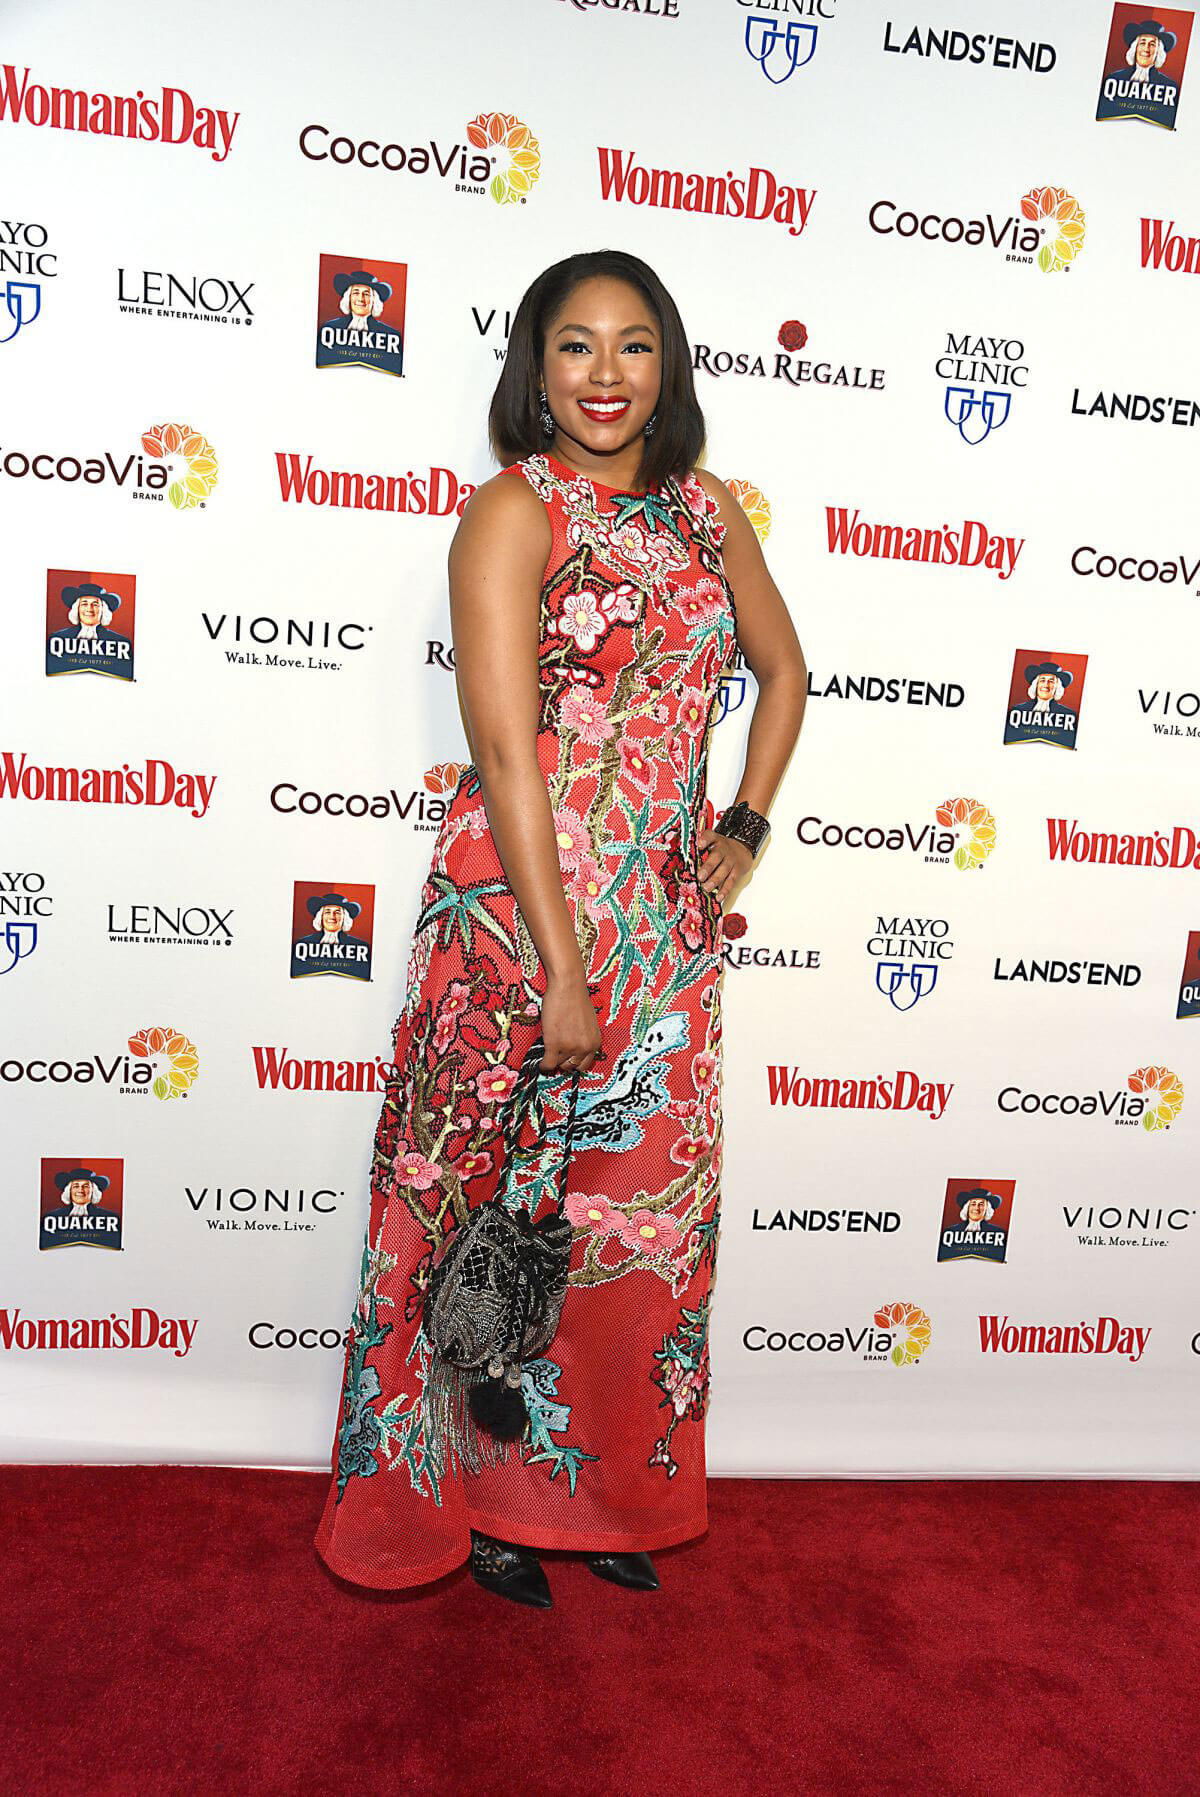 Alicia Quarles at Women's Day 14th Annual Red Dress Awards in New York